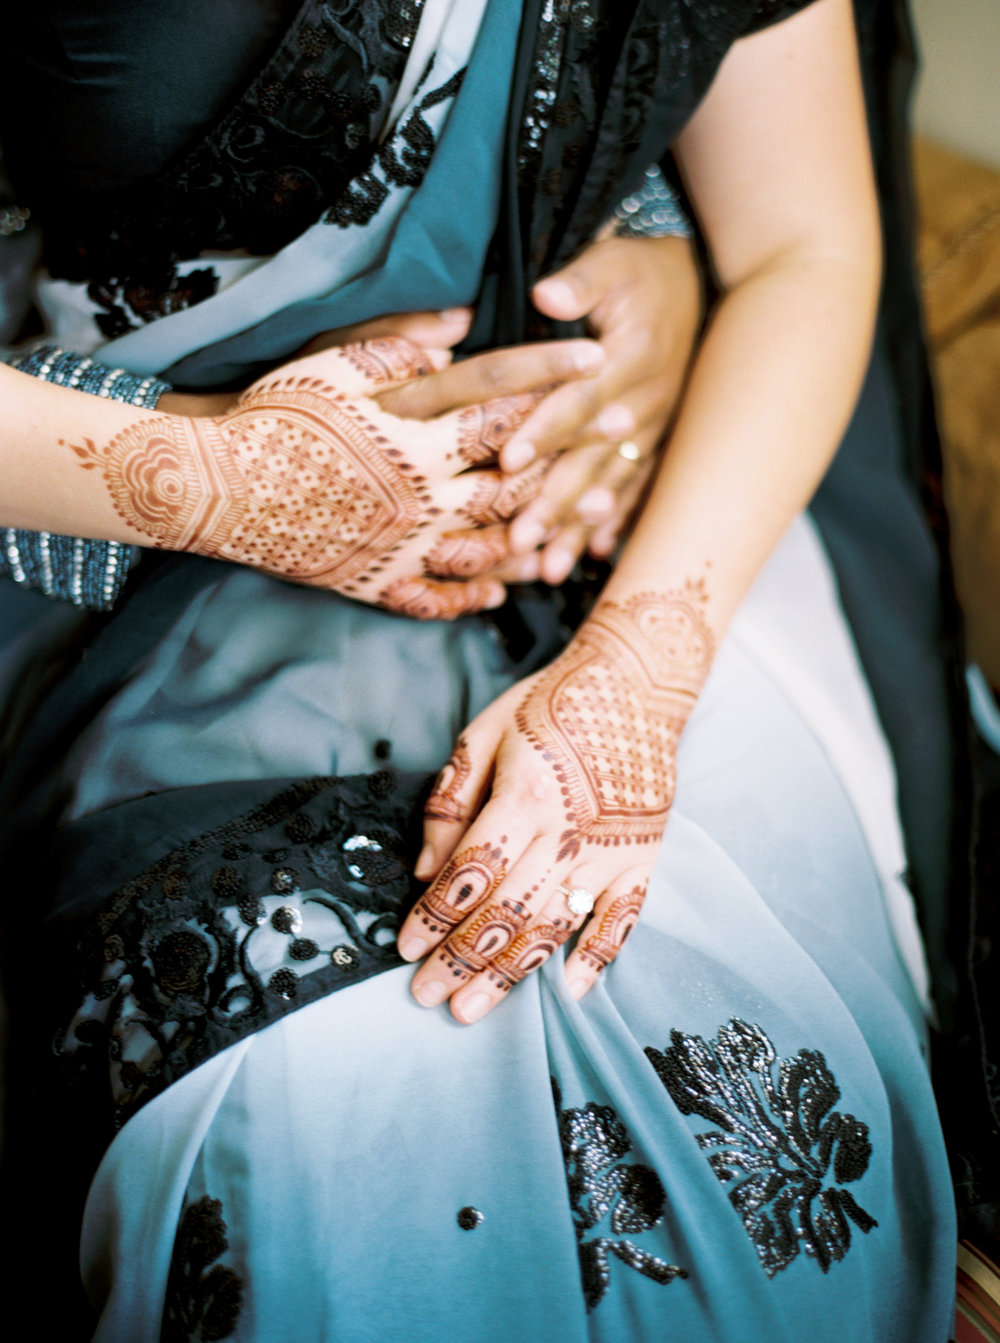 Wahoo_Grill_Atlanta_Indian_Wedding_Abigail_Malone_Photgoraphy_FIlm-46.jpg